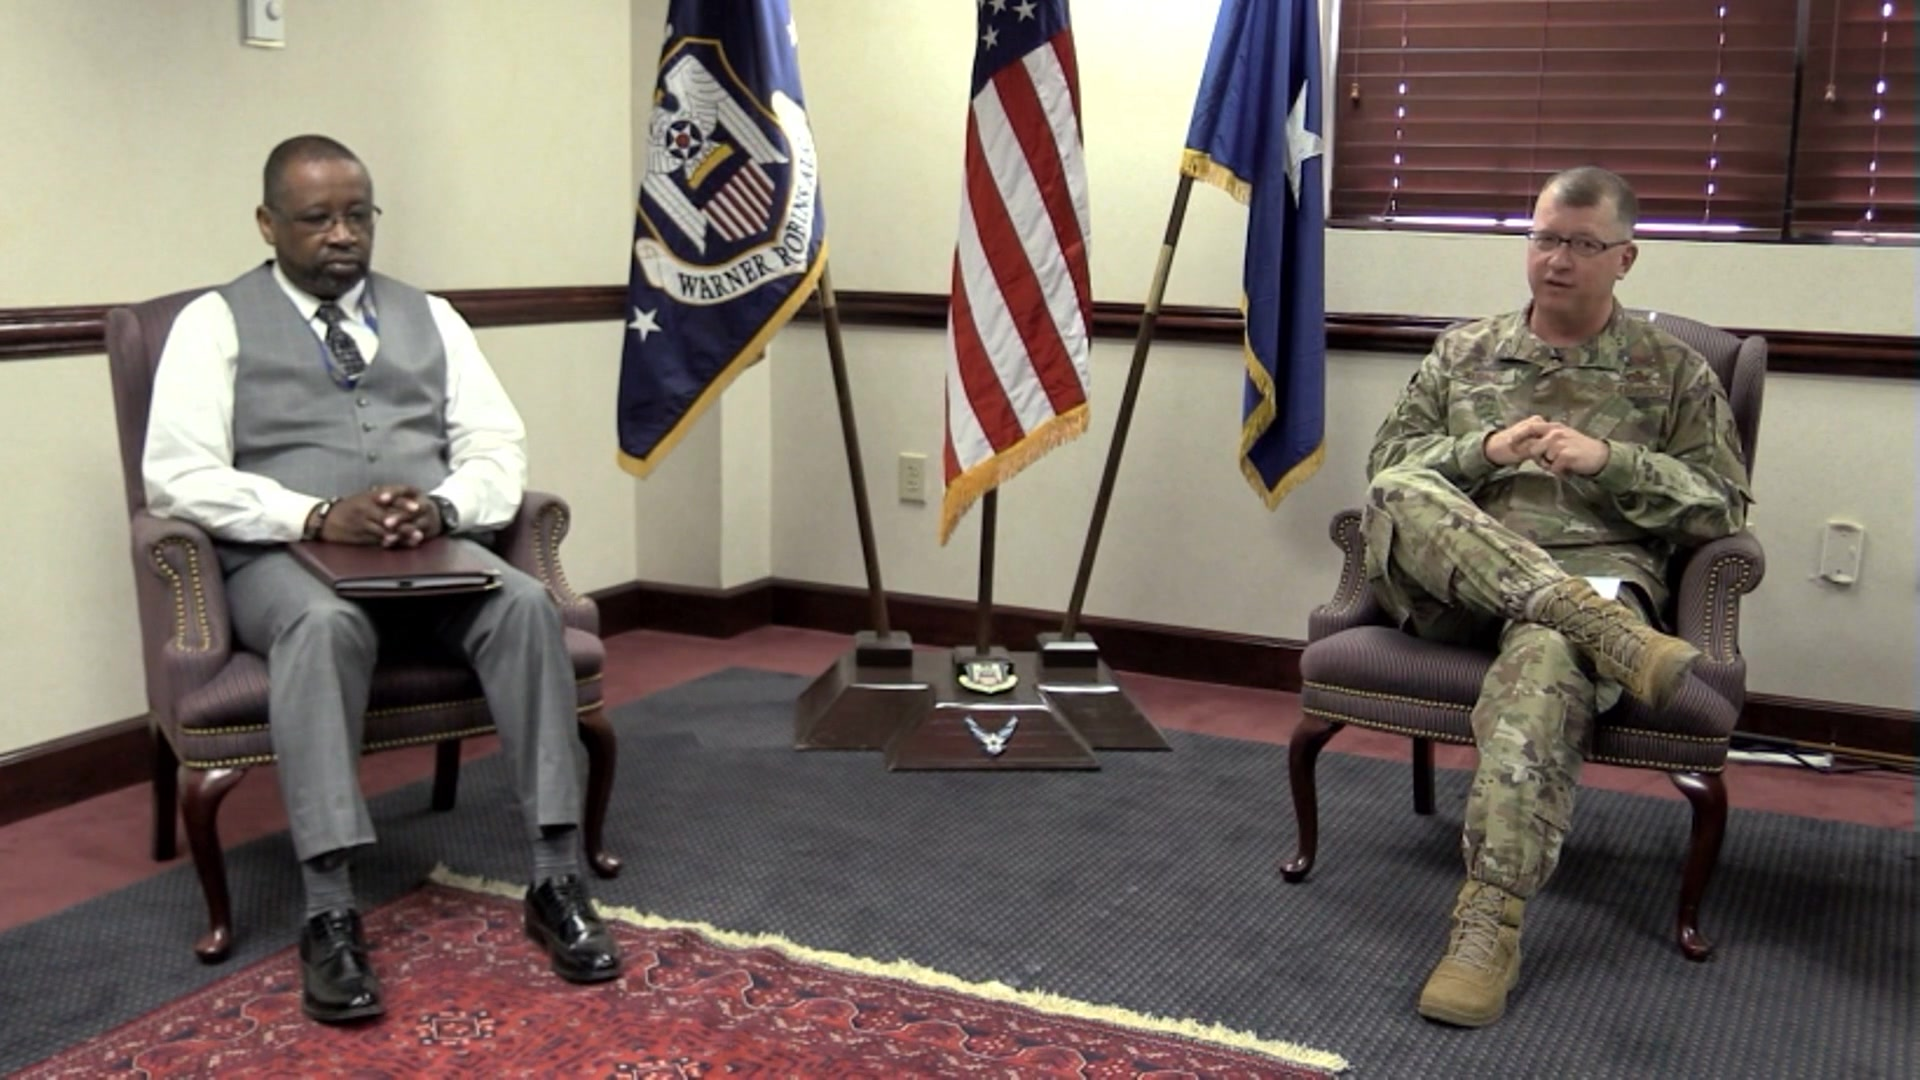 Video thumbnail shows Mr. Williams and Brig. Gen. Kubinec sitting in chairs speaking to the camera.